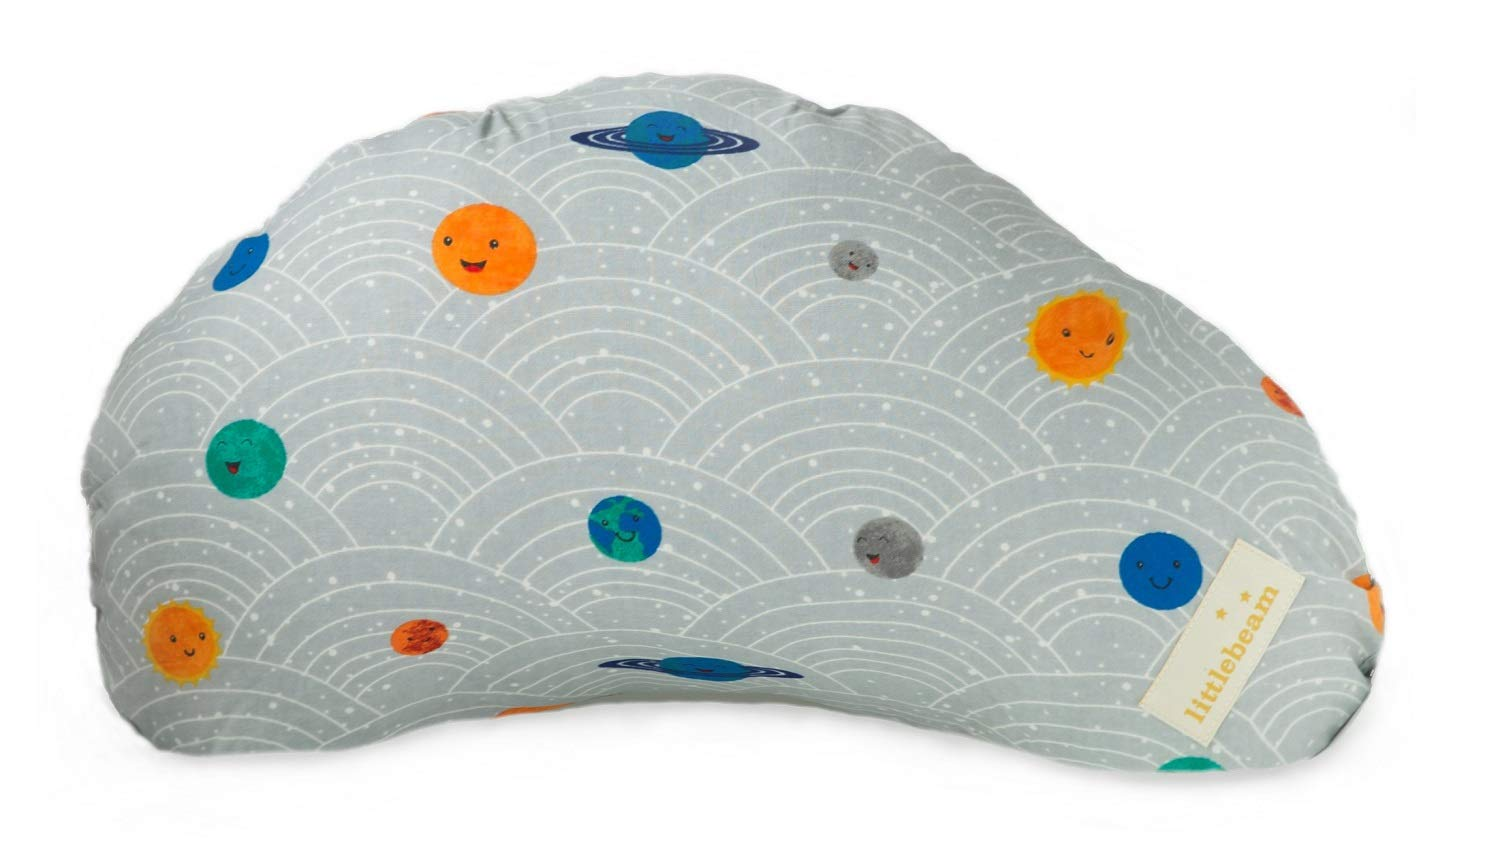 littlebeam Portable Baby Breastfeeding Nursing Support Pillow with Memory Foam (Space)